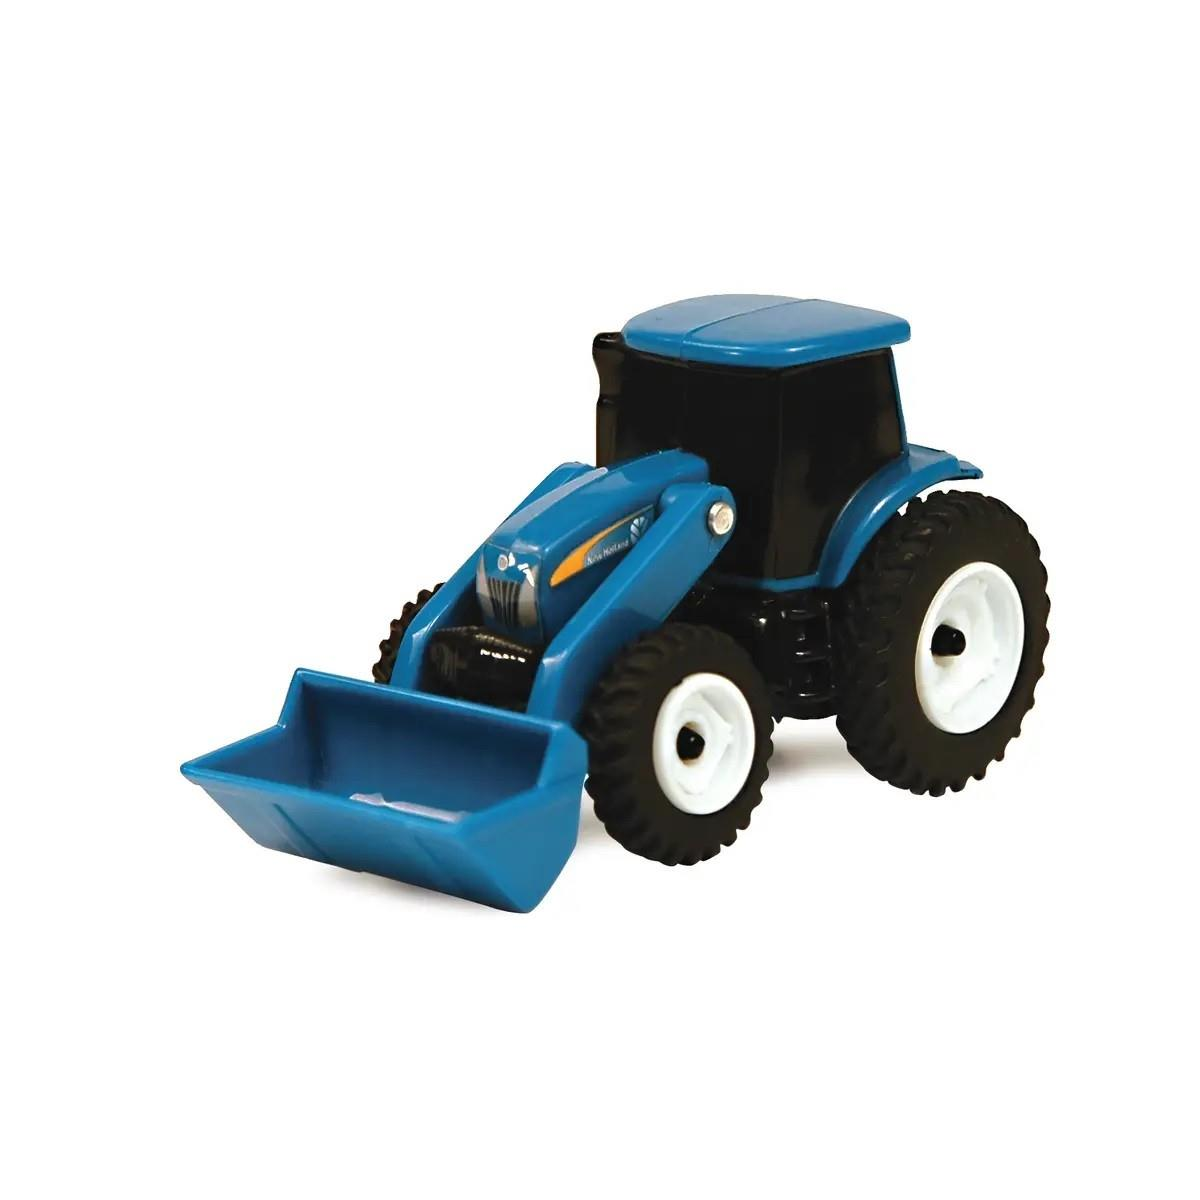 Tomy Ertl New Holland Tractor with Loader (46575) | Bumble Tree